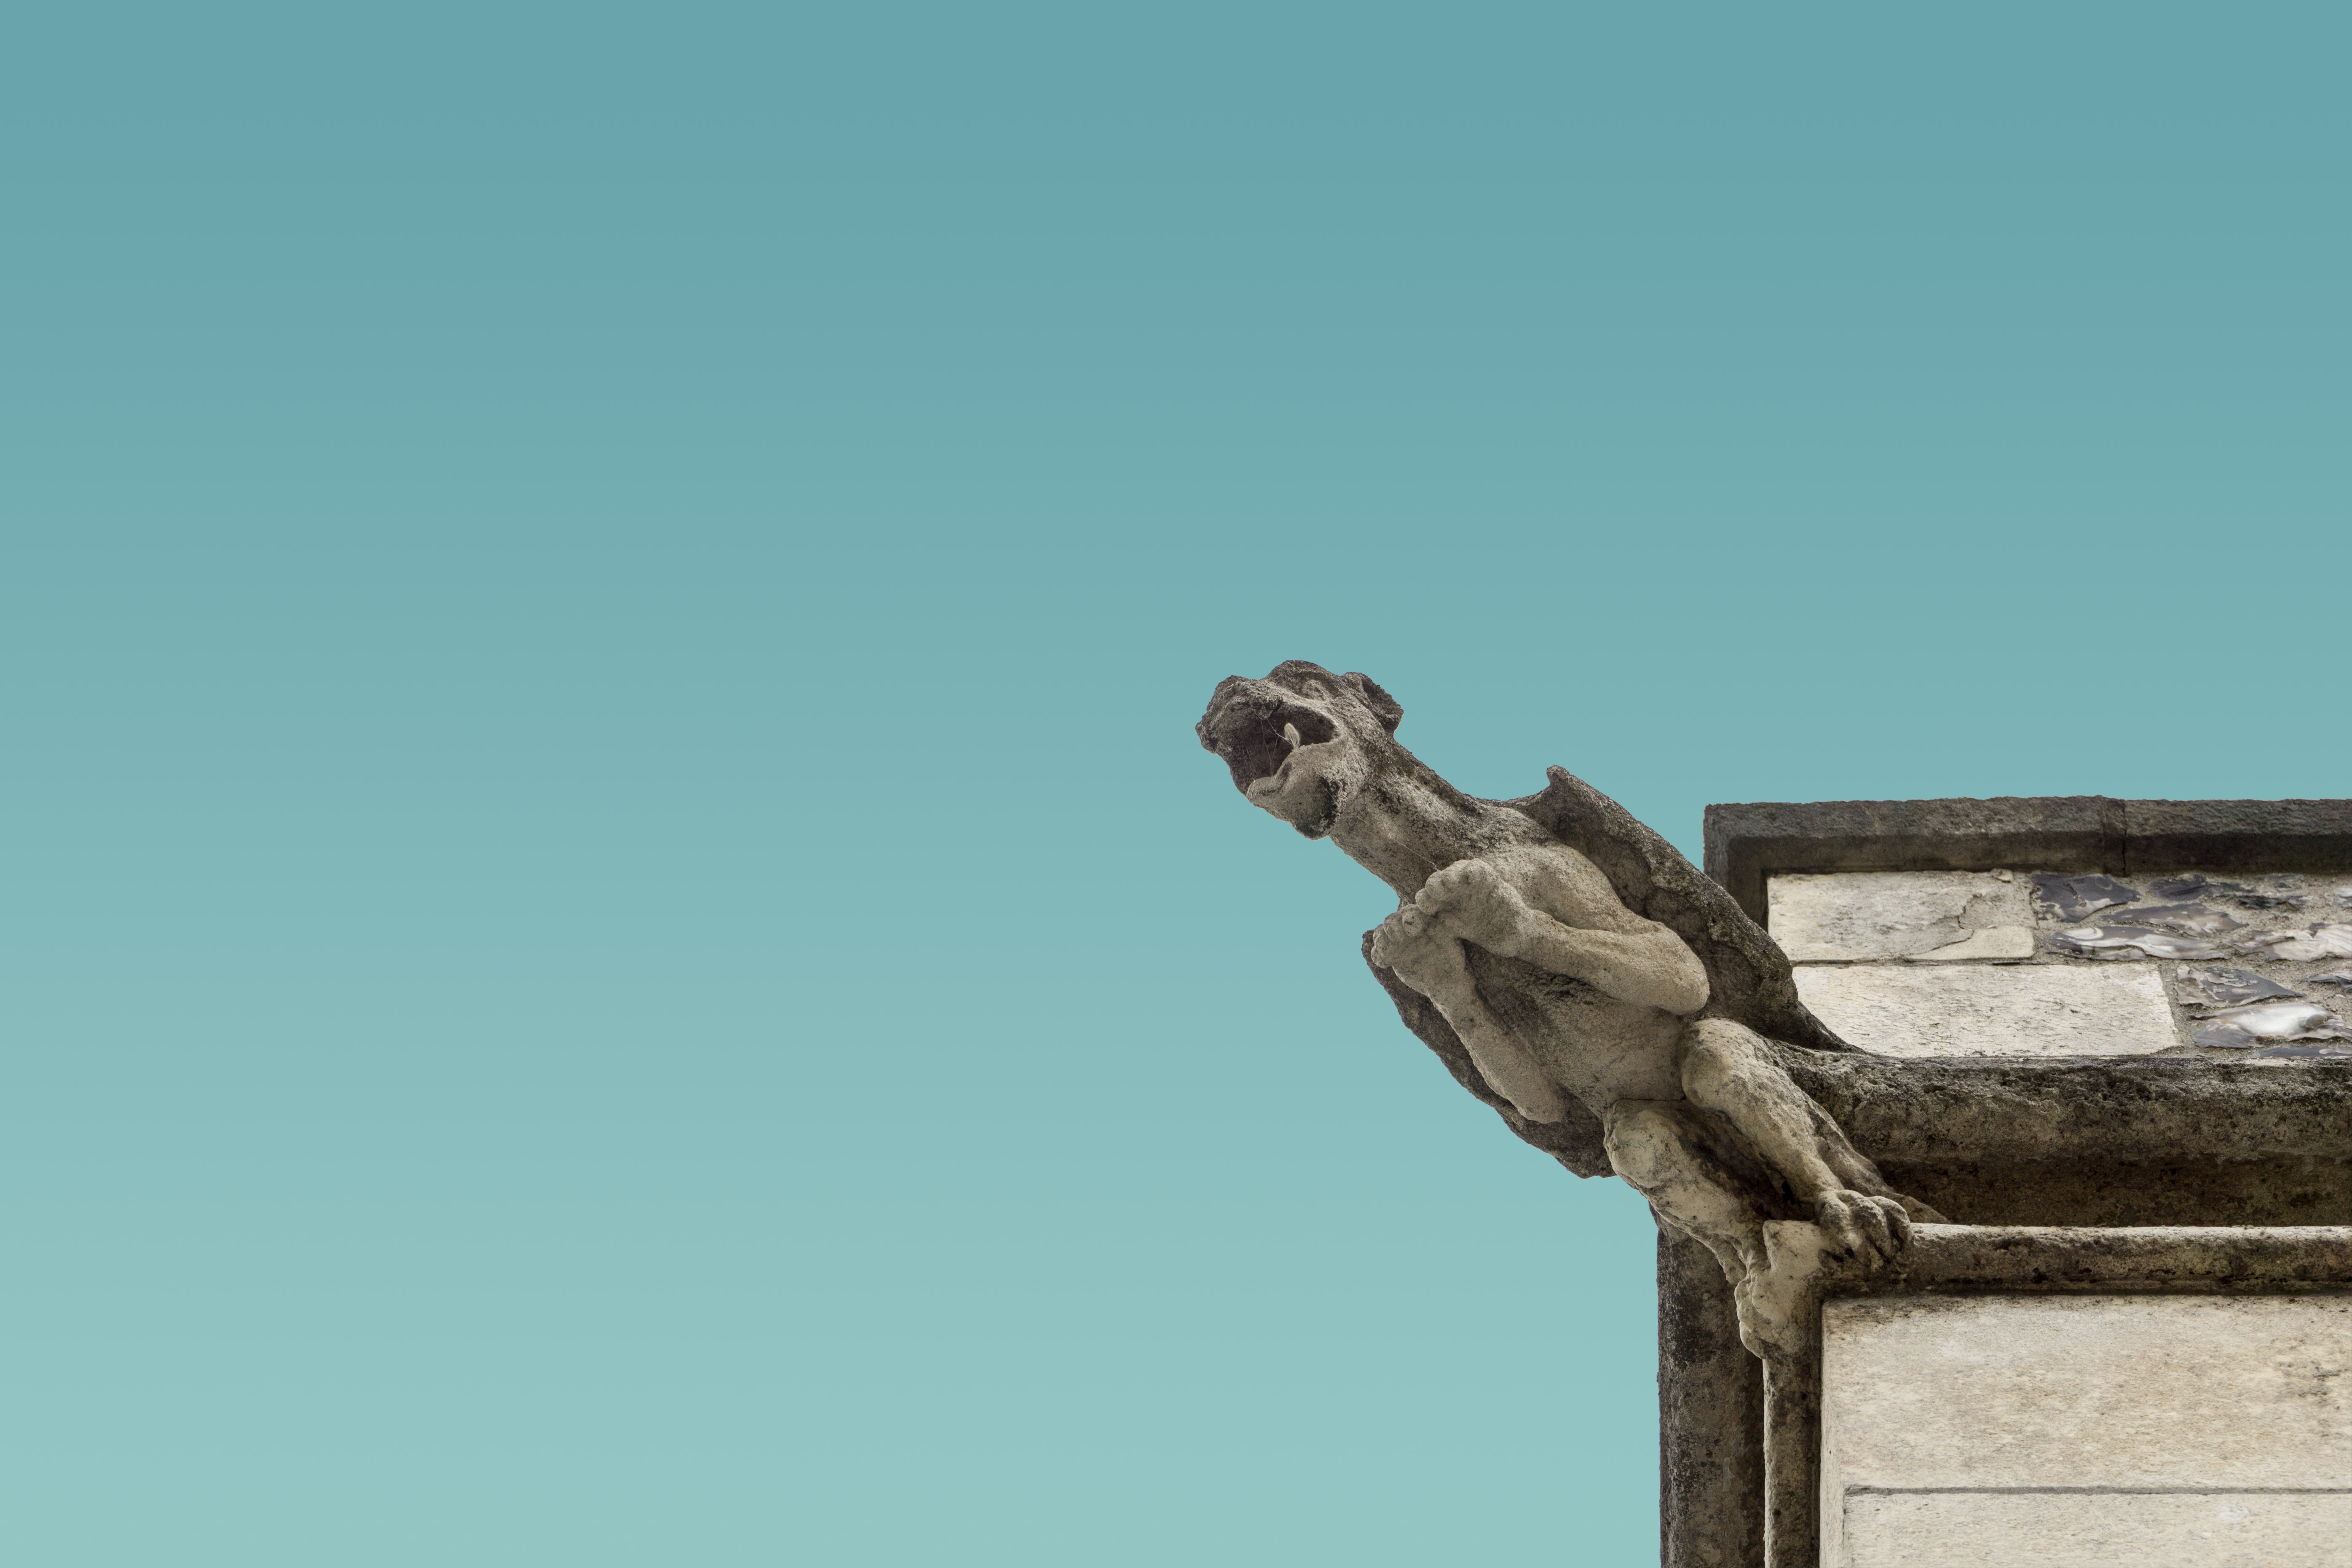 concrete gargoyle on structure edge